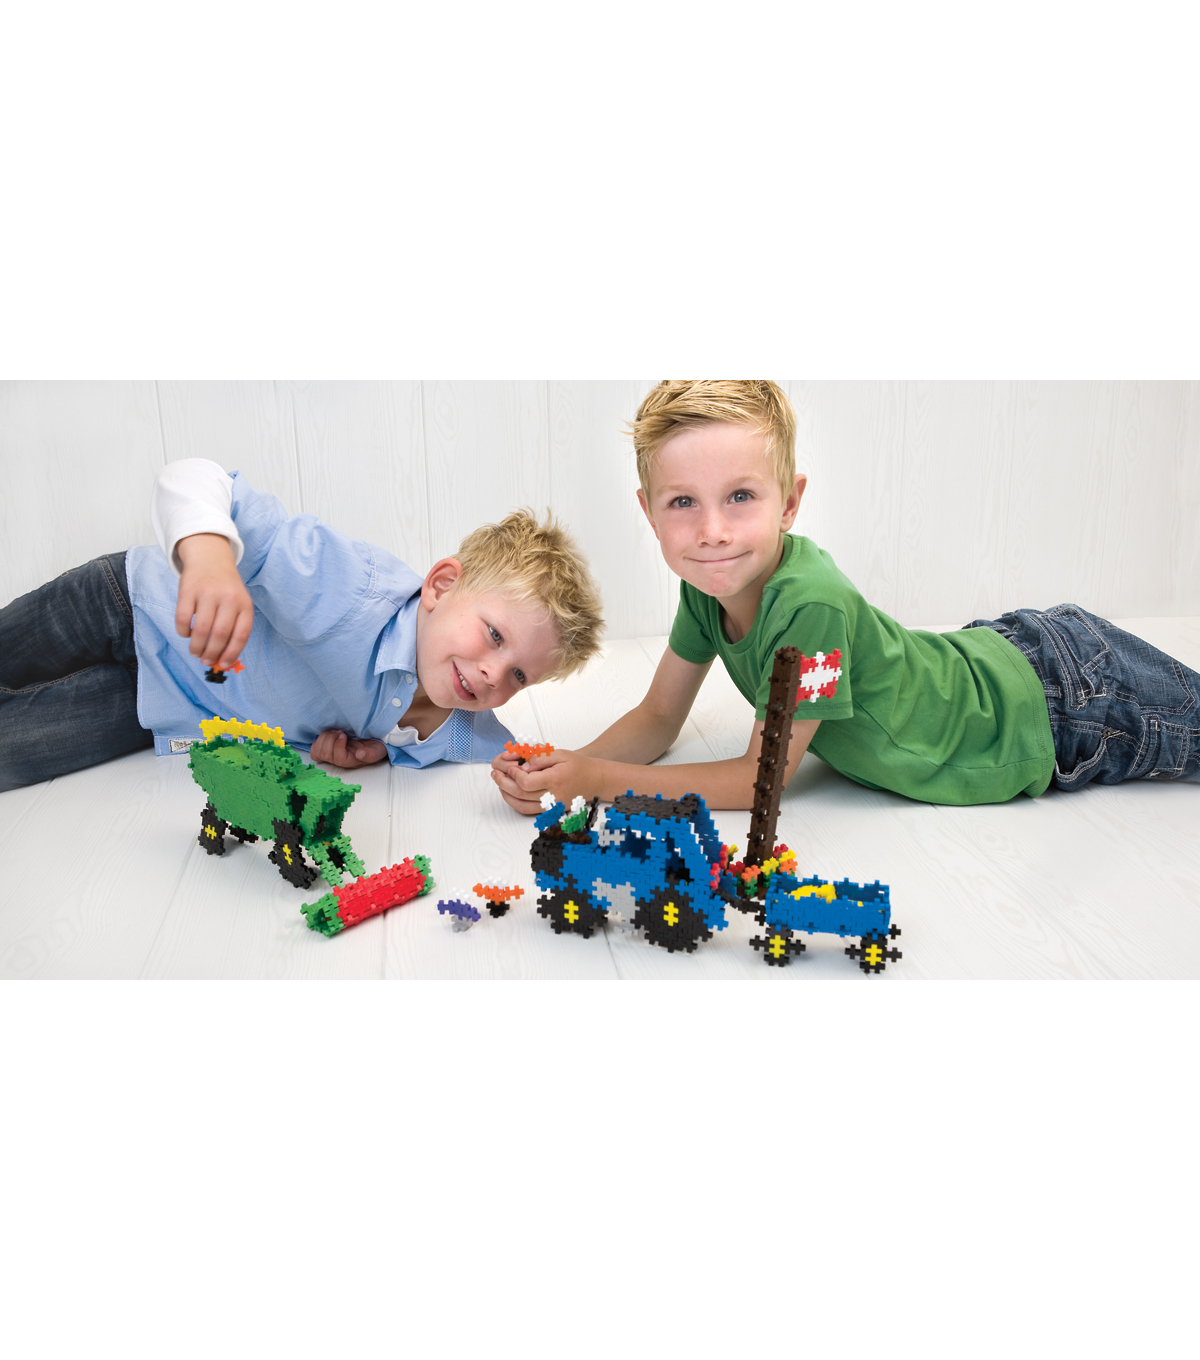 Plus-Plus 300 PC Basic Creative Play & Construction Set